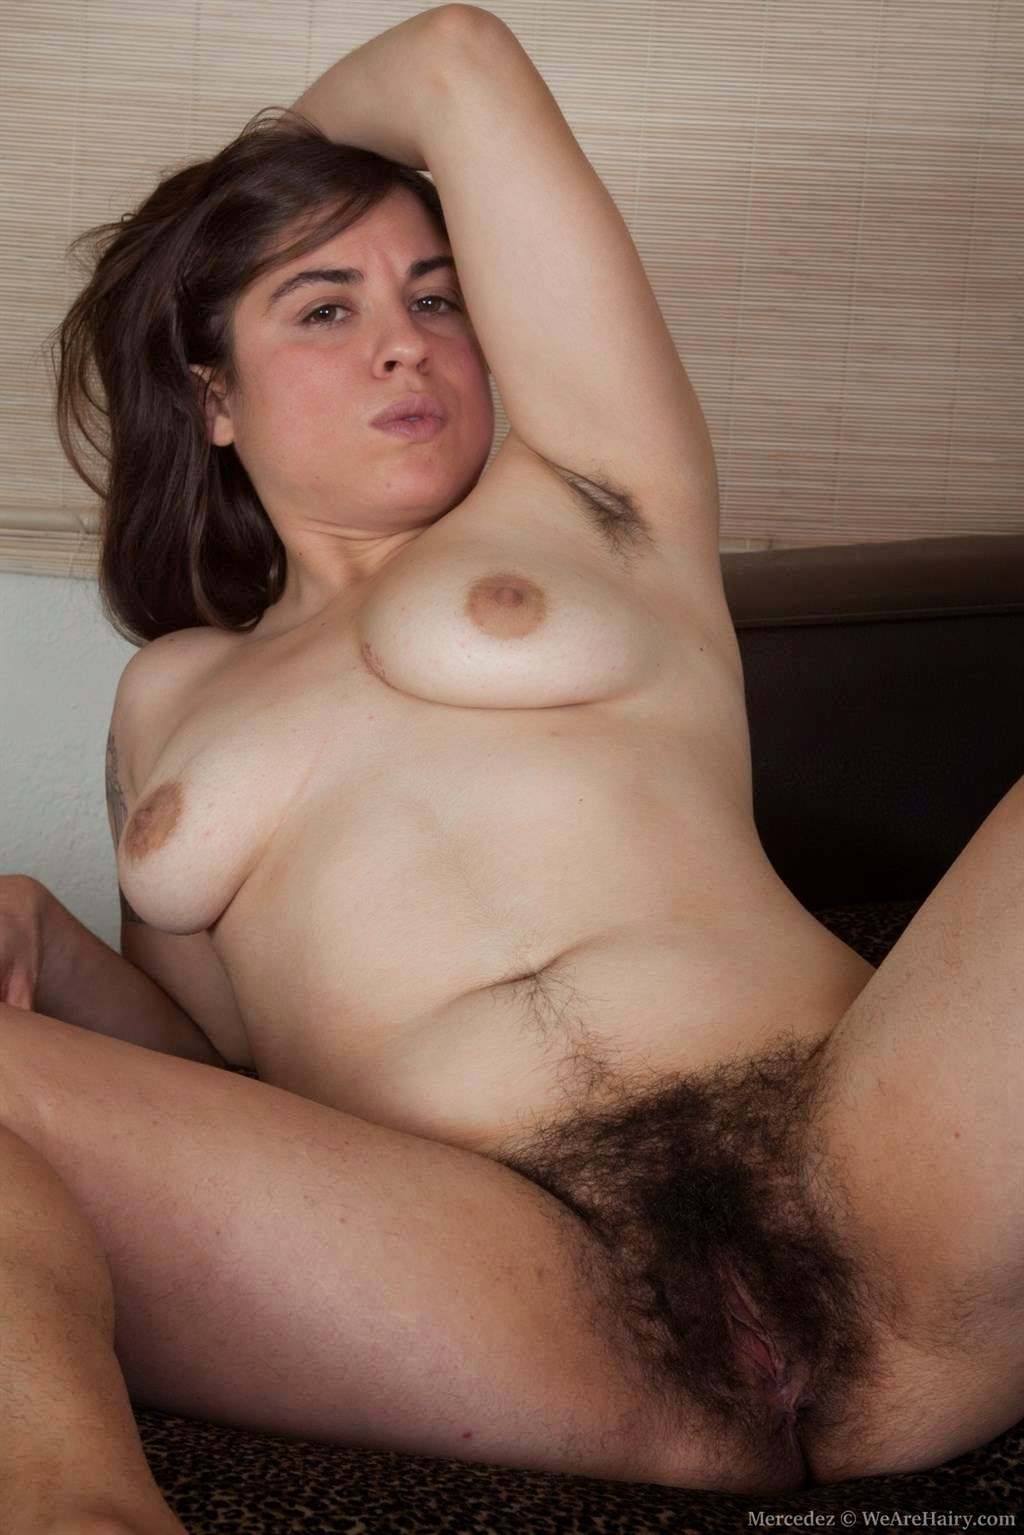 old fat hairy pussie xxx - hot naked pics